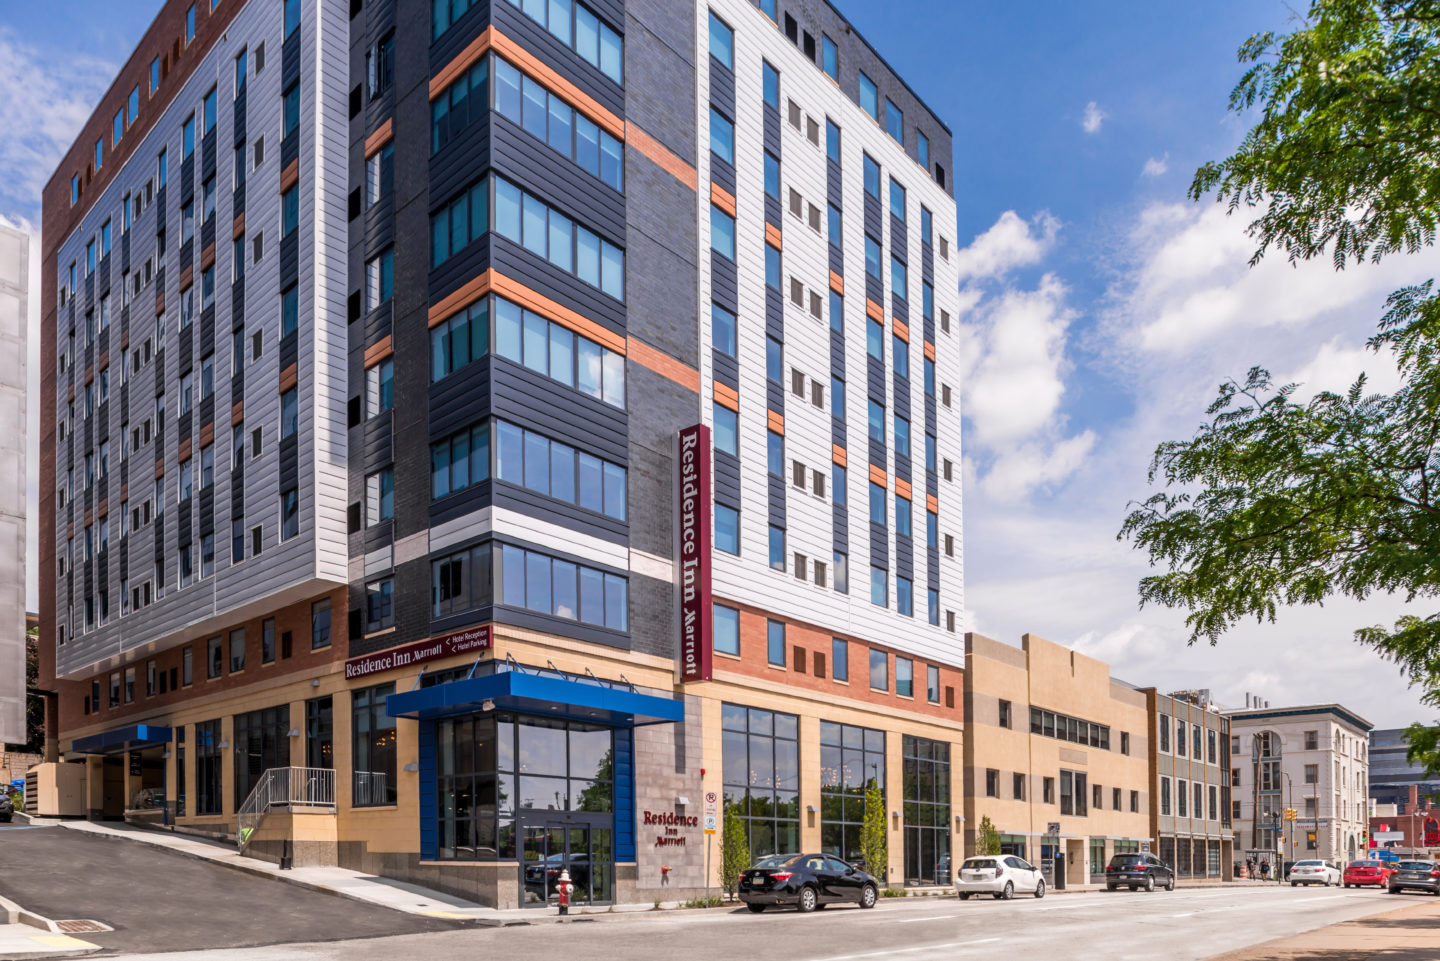 Residence Inn by Marriott Pittsburgh Oakland/University Place